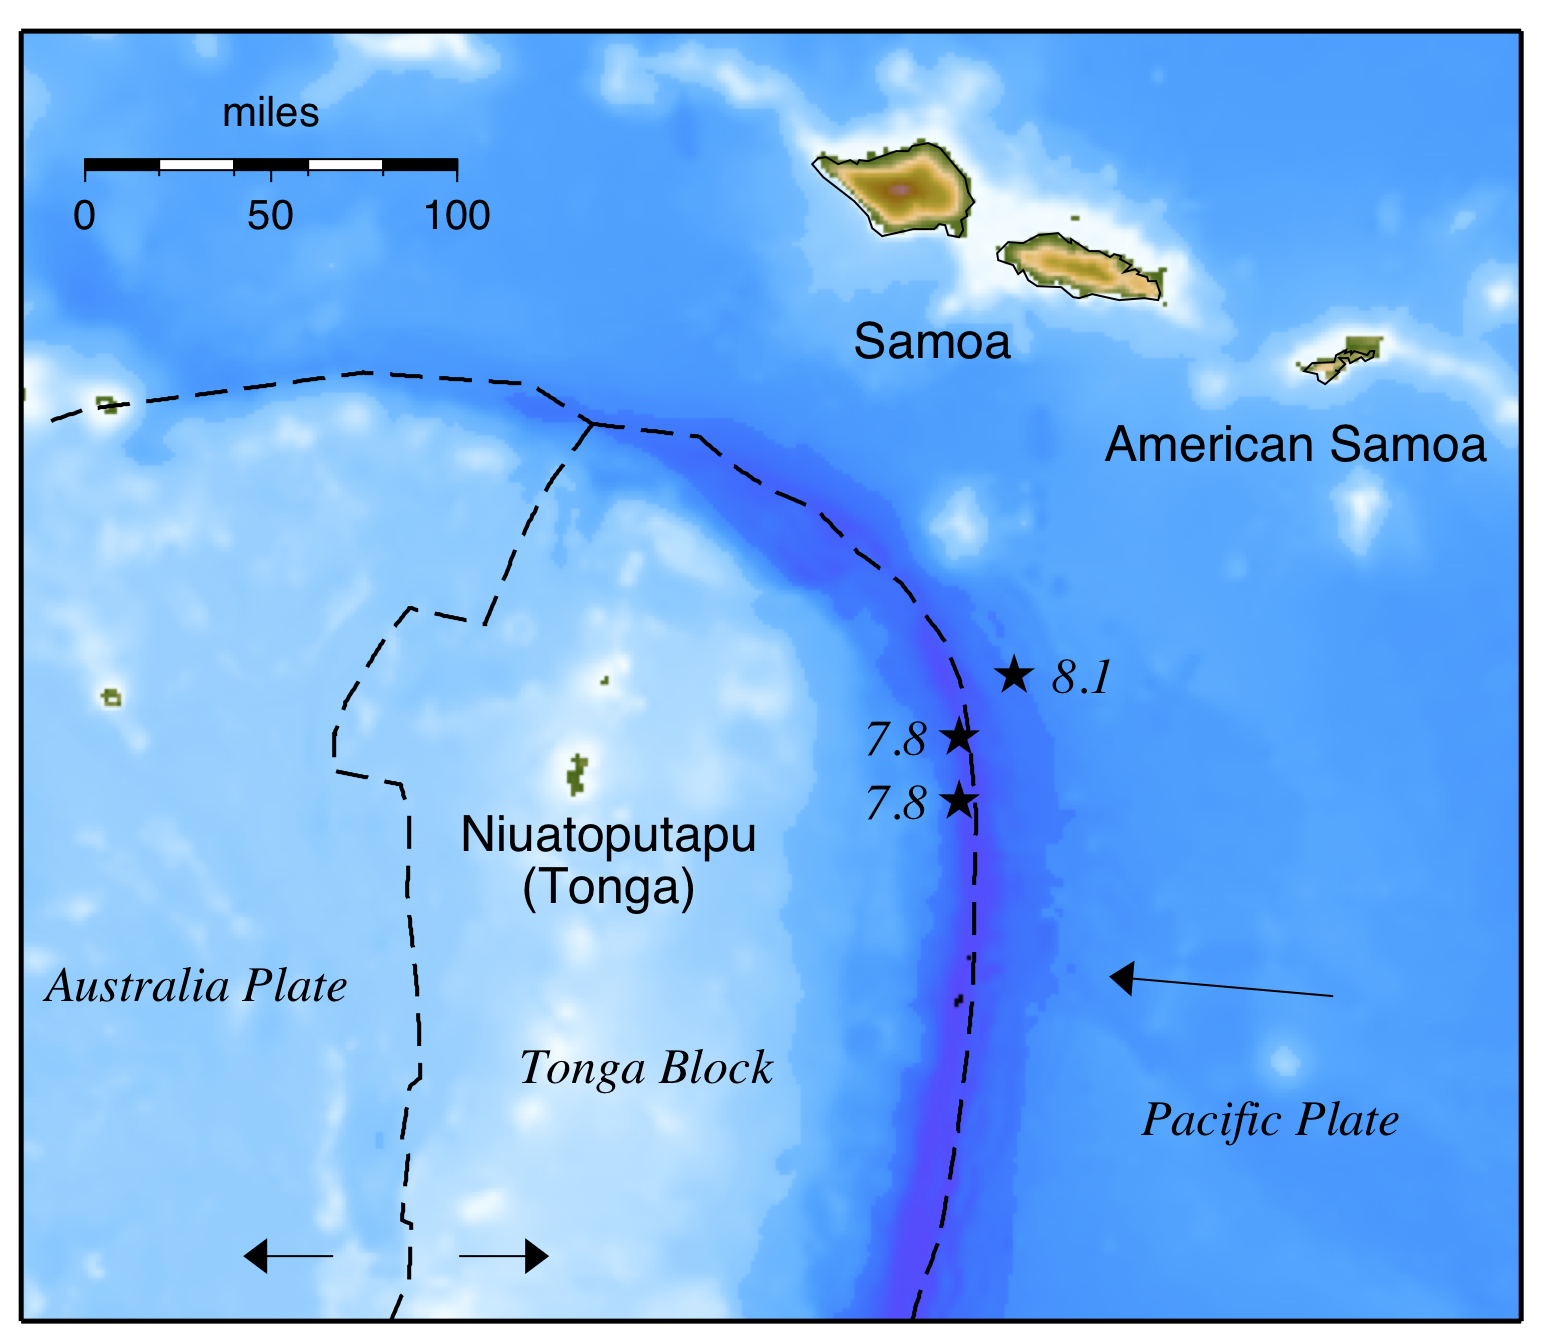 A new study shows that a great earthquake and tsunami that killed 192 people in Samoa, American Samoa and northern Tonga on Sept. 29, 2009, actually was triple whammy. University of Utah seismologist Keith Koper says the main quake of magnitude 8.1 concealed and triggered two major quakes of magnitude 7.8 that occurred within two minutes of the main shock. Stars on map show epicenters of the three quakes. Dashed lines show boundaries between Earth's crustal plates, and arrows show plate motions. The 8.1 quake occurred when the Pacific plate cracked as it dived slowly westward beneath the Tonga block of the Australia plate, triggering the two 7.8 quakes on the boundary between the Pacific plate and Tonga block. Such a pattern never had been observed previously.